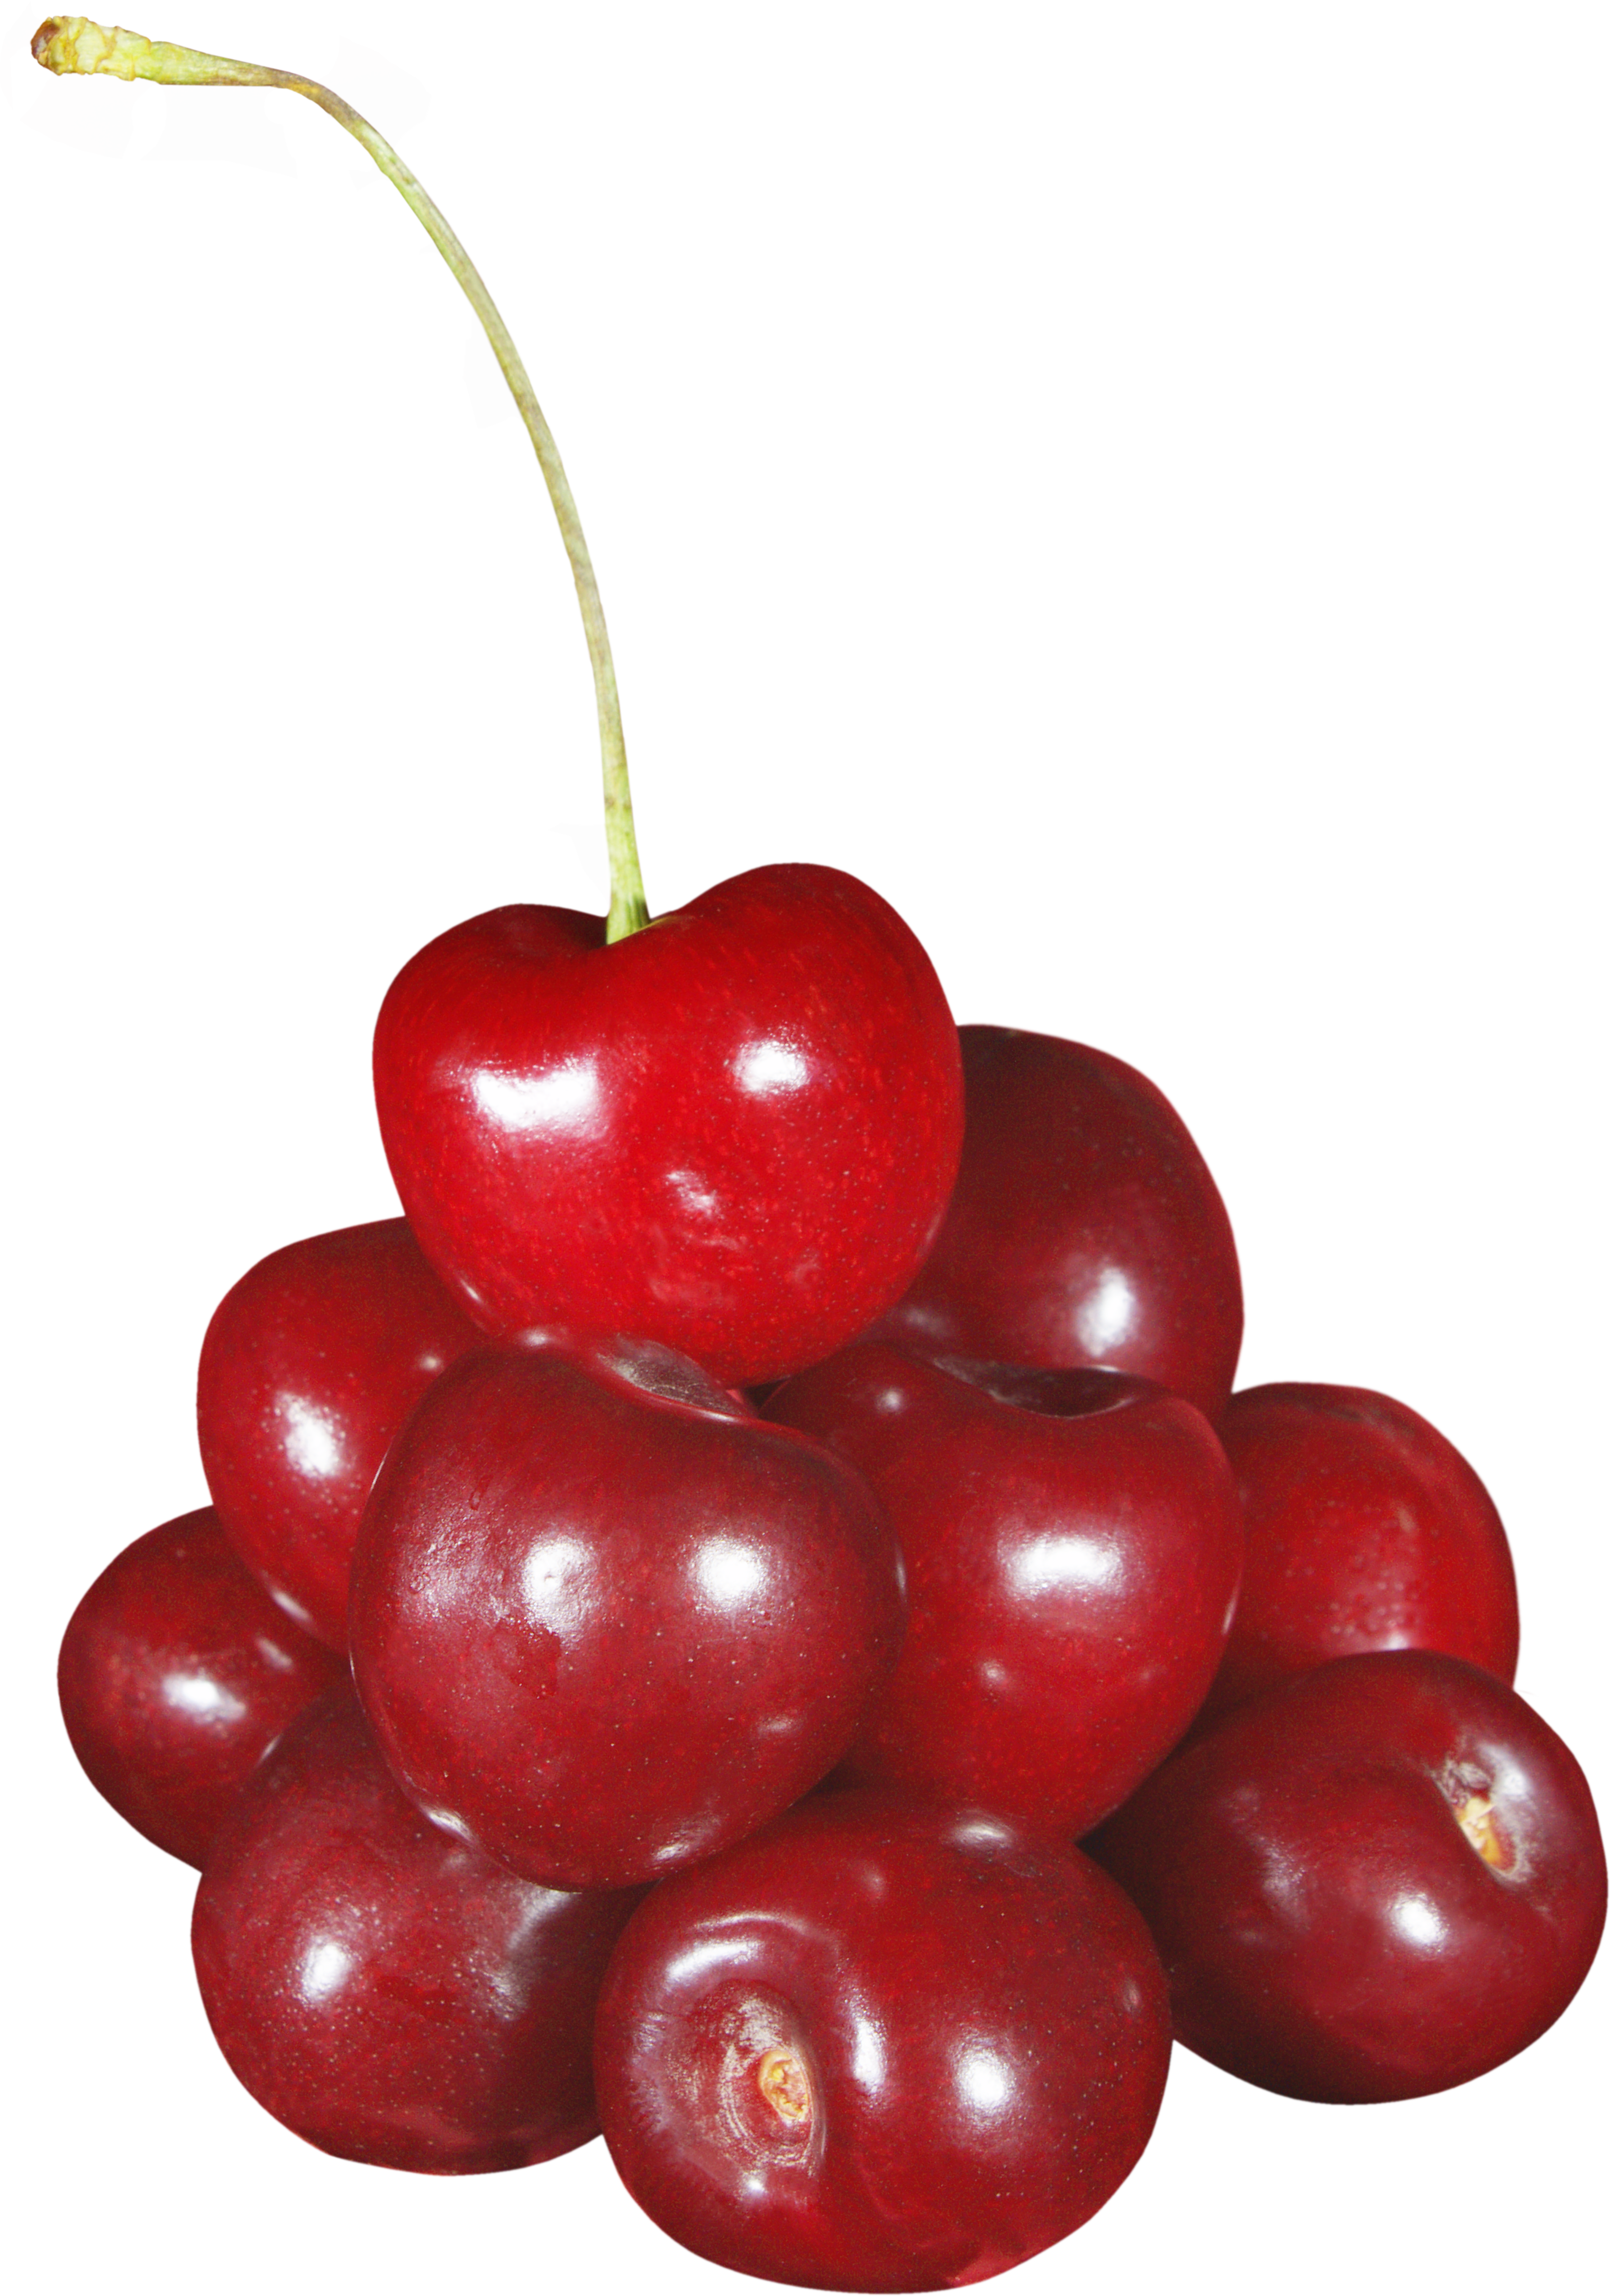 Cherries and apple clipart black and white royalty free Cherry Forty-two   Isolated Stock Photo by noBACKS.com royalty free